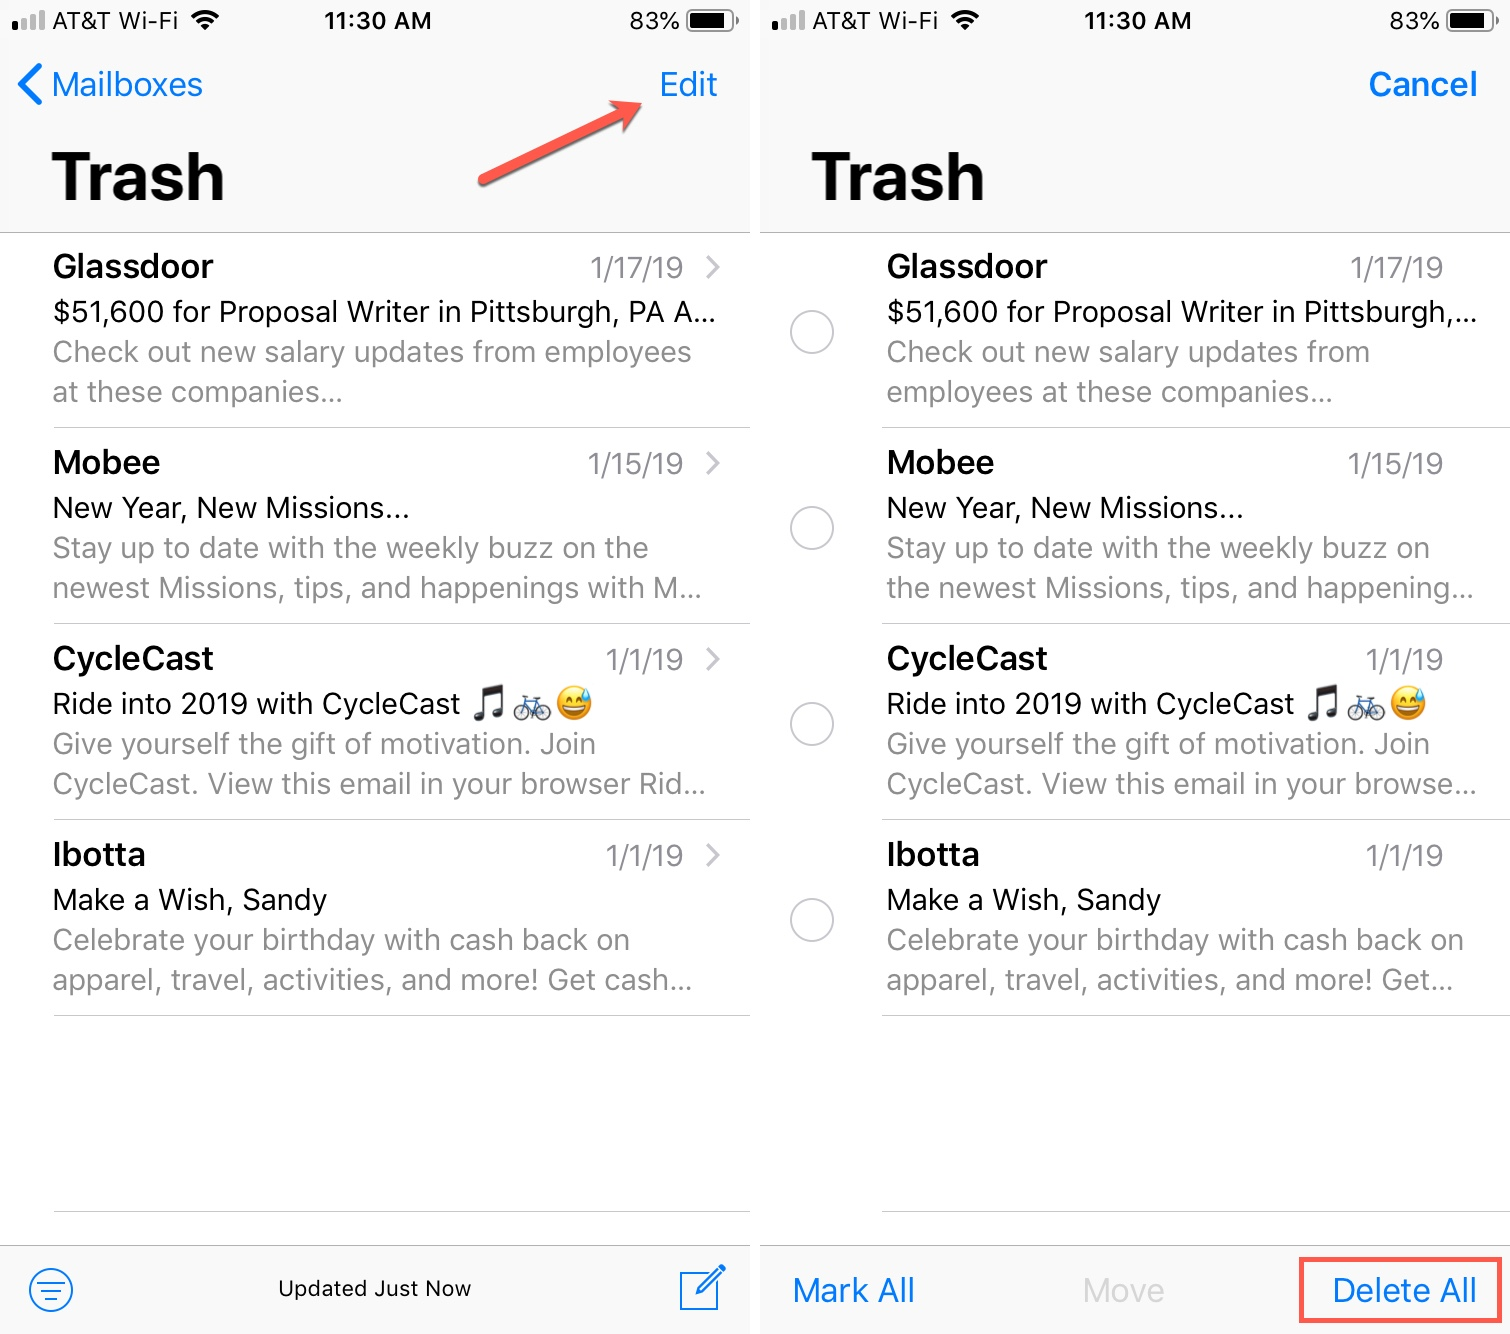 Delete emails from Trash iPhone Mail